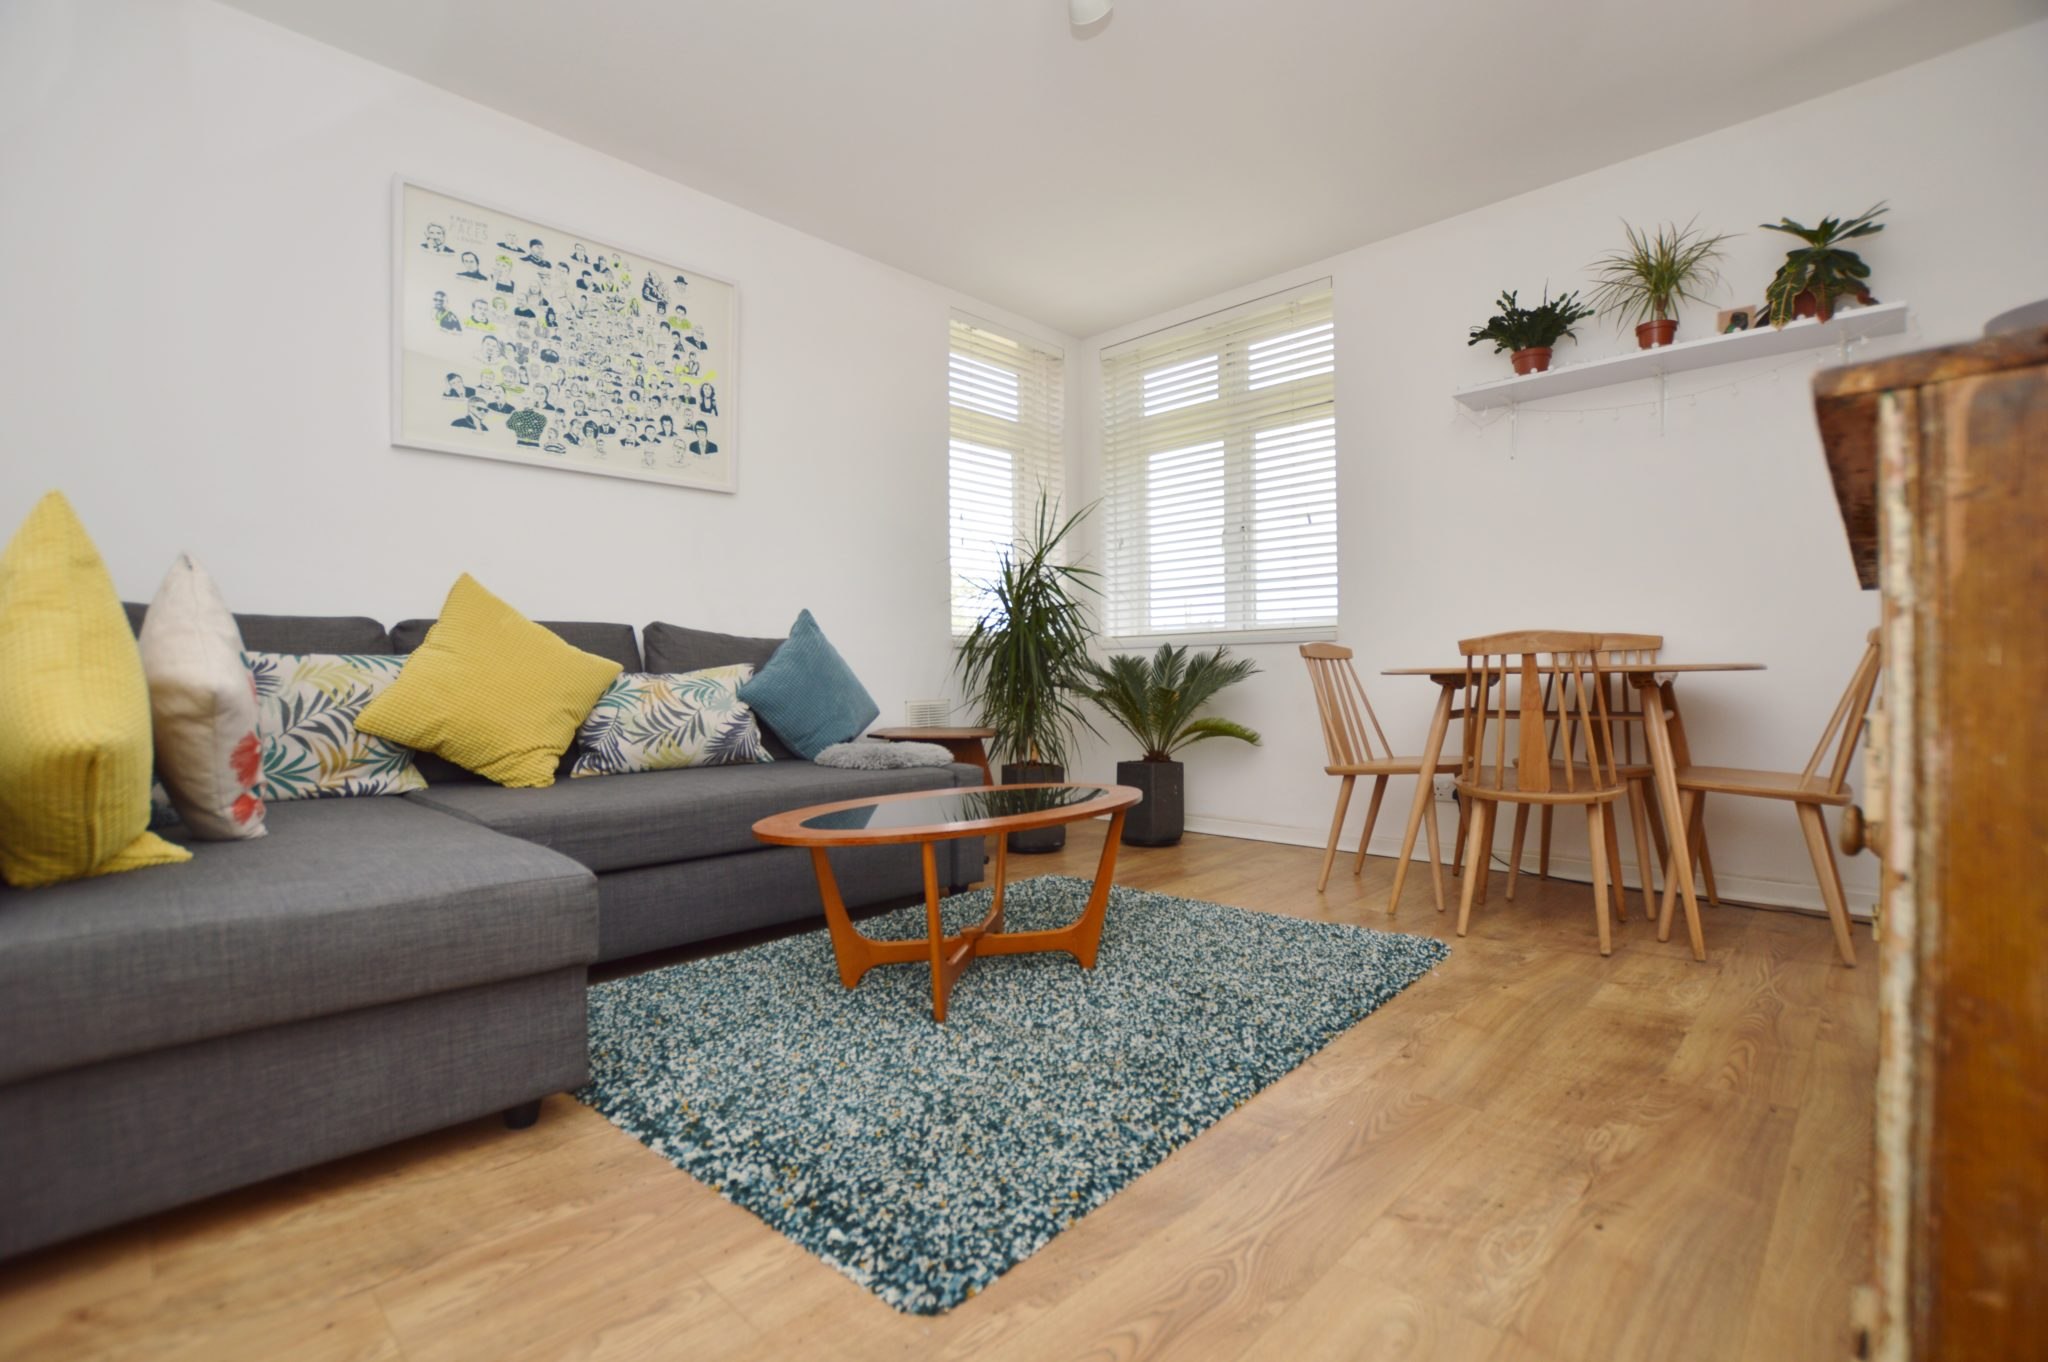 Banister House, Hackney, E9 6BT – 2 Bedroom Flat